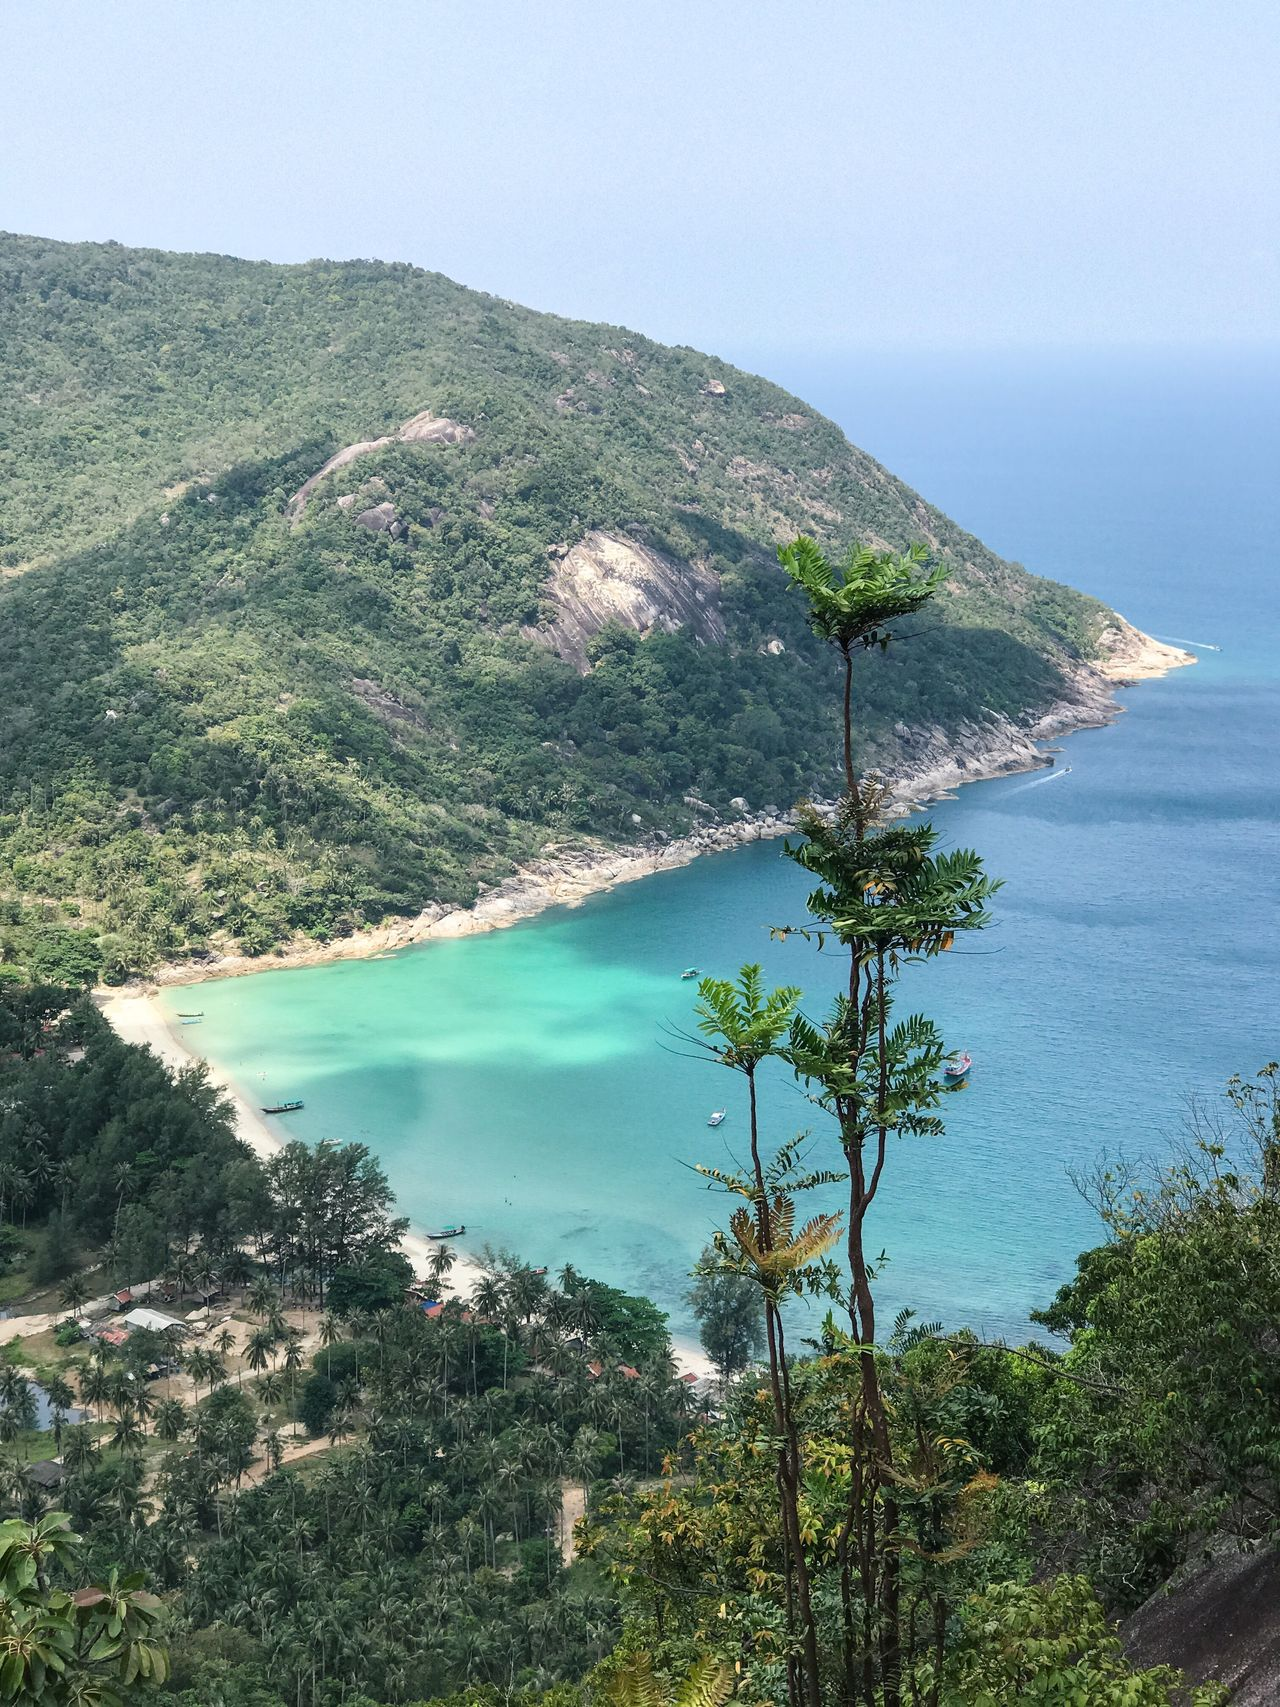 Sea Water Nature Beauty In Nature Scenics Tranquility High Angle View Tranquil Scene No People The Great Outdoors - 2017 EyeEm Awards Outdoors Mountain Beach Tree Horizon Over Water Clear Sky Sky Landscape Hiking Trekking Beautiful View Bird Koh Phangan Thailand Jungle